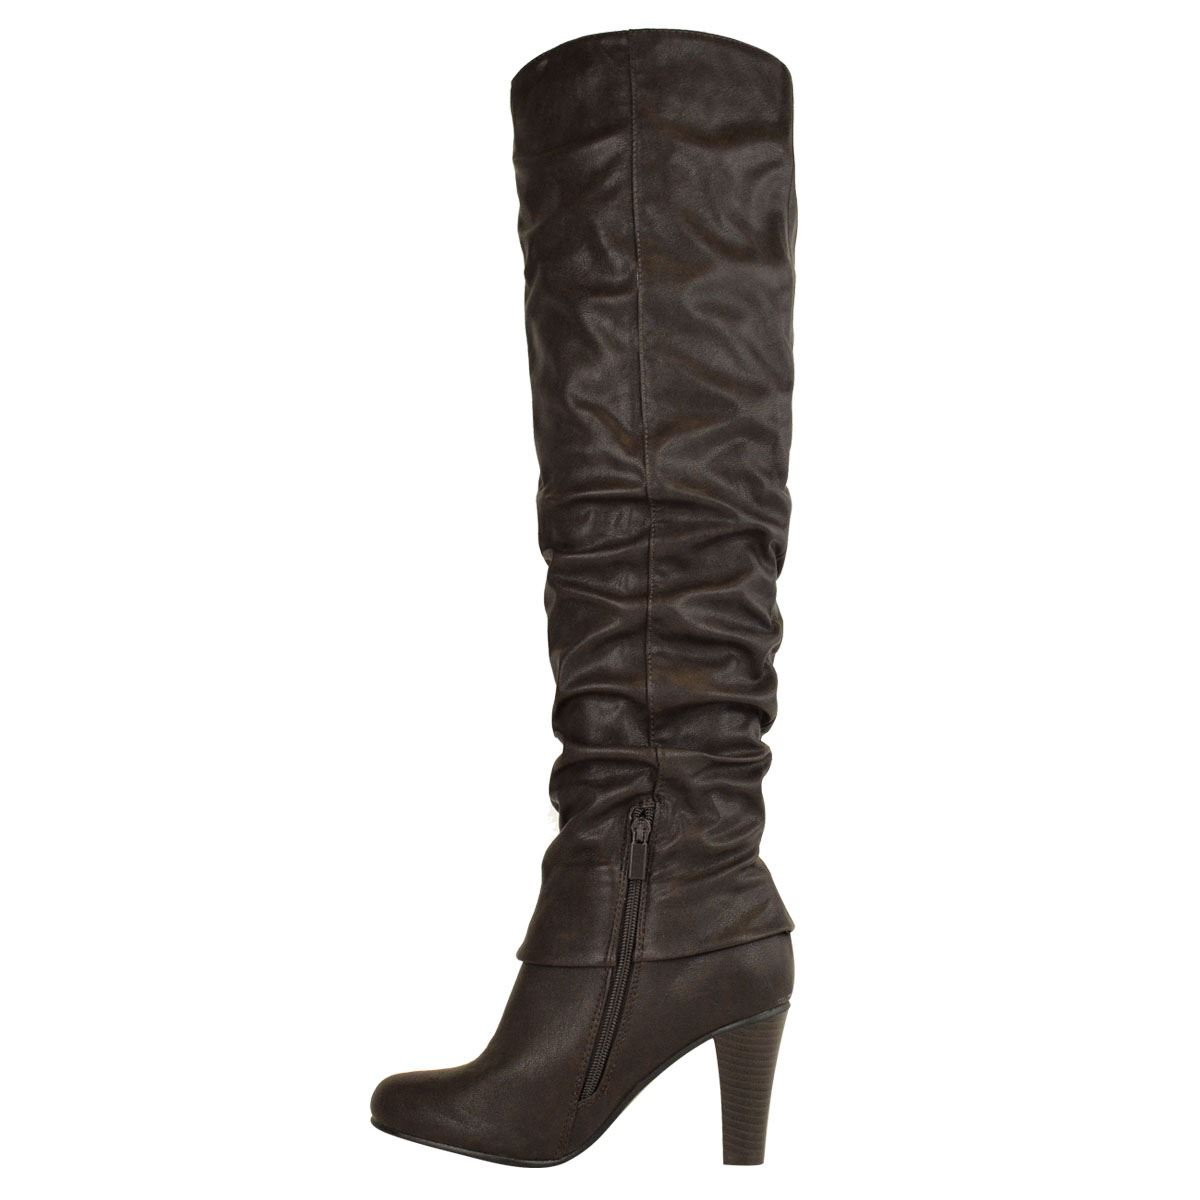 Womens-Ladies-Knee-Calf-High-Boots-Block-Heels-Stretchy-Thigh-Shoes-Grip-Size thumbnail 27